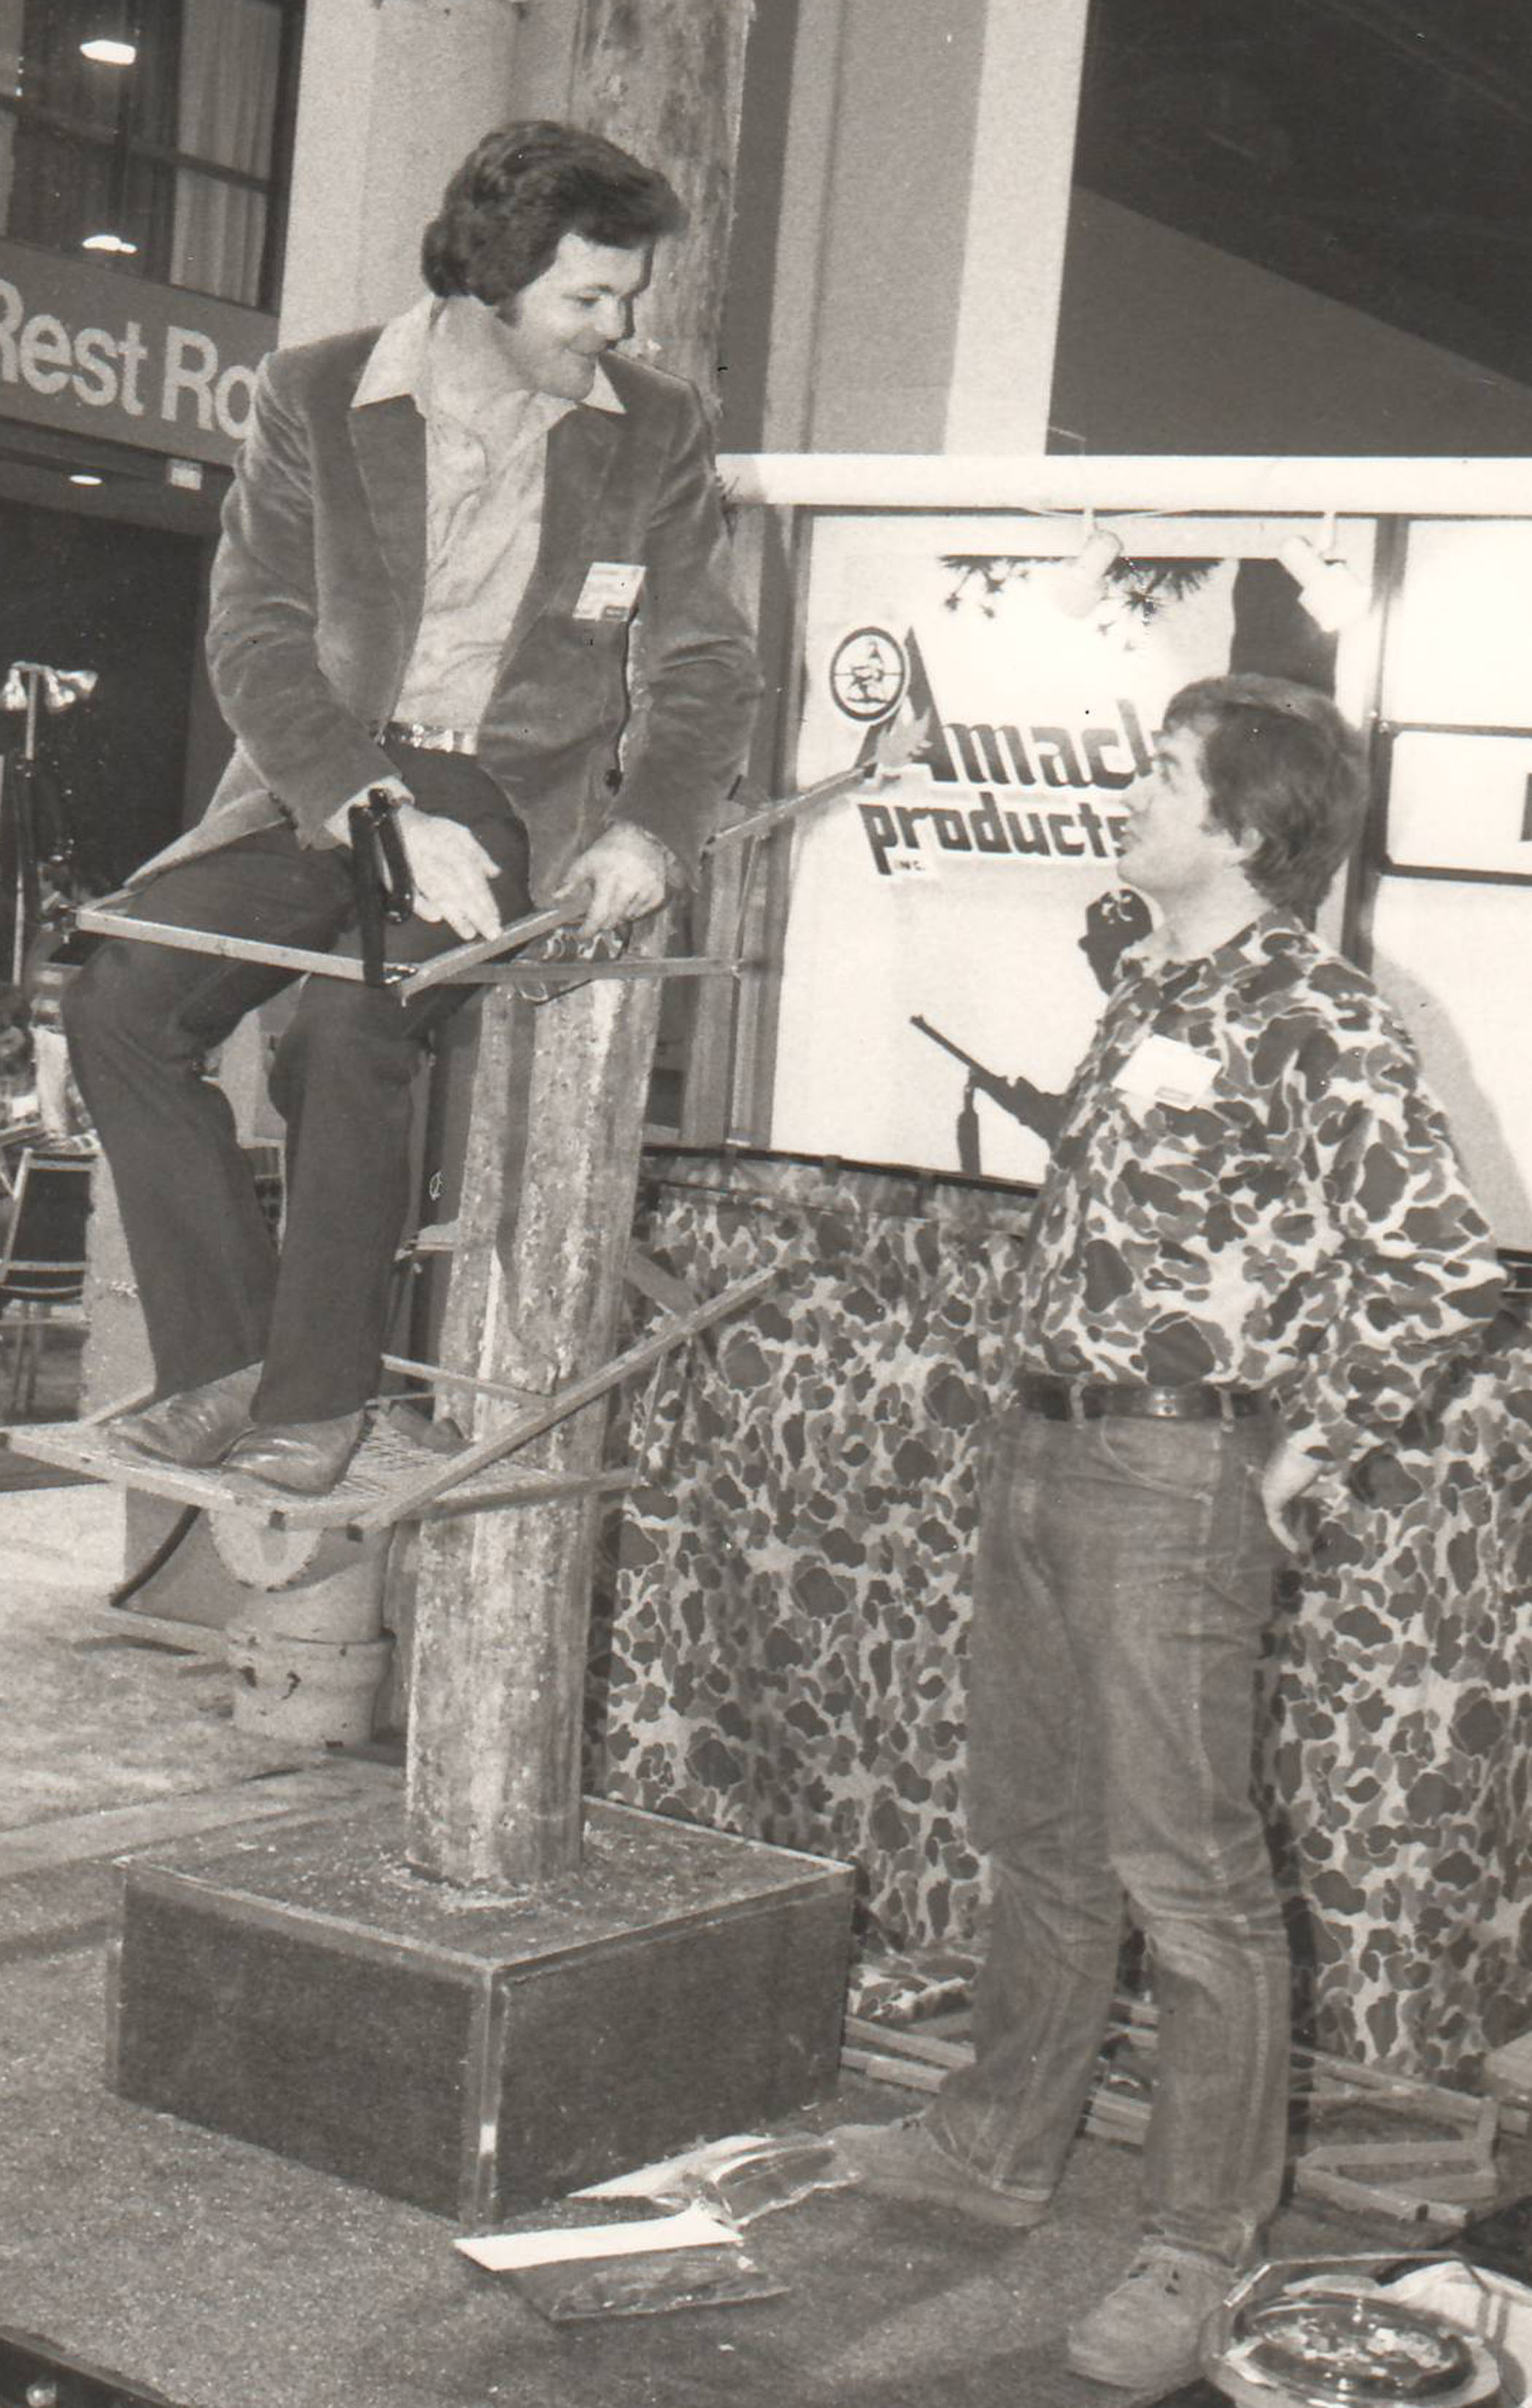 Paul Demonstrates his tree stand design at the very first NSSF Shot Show held in St. Louis, MO in 1979